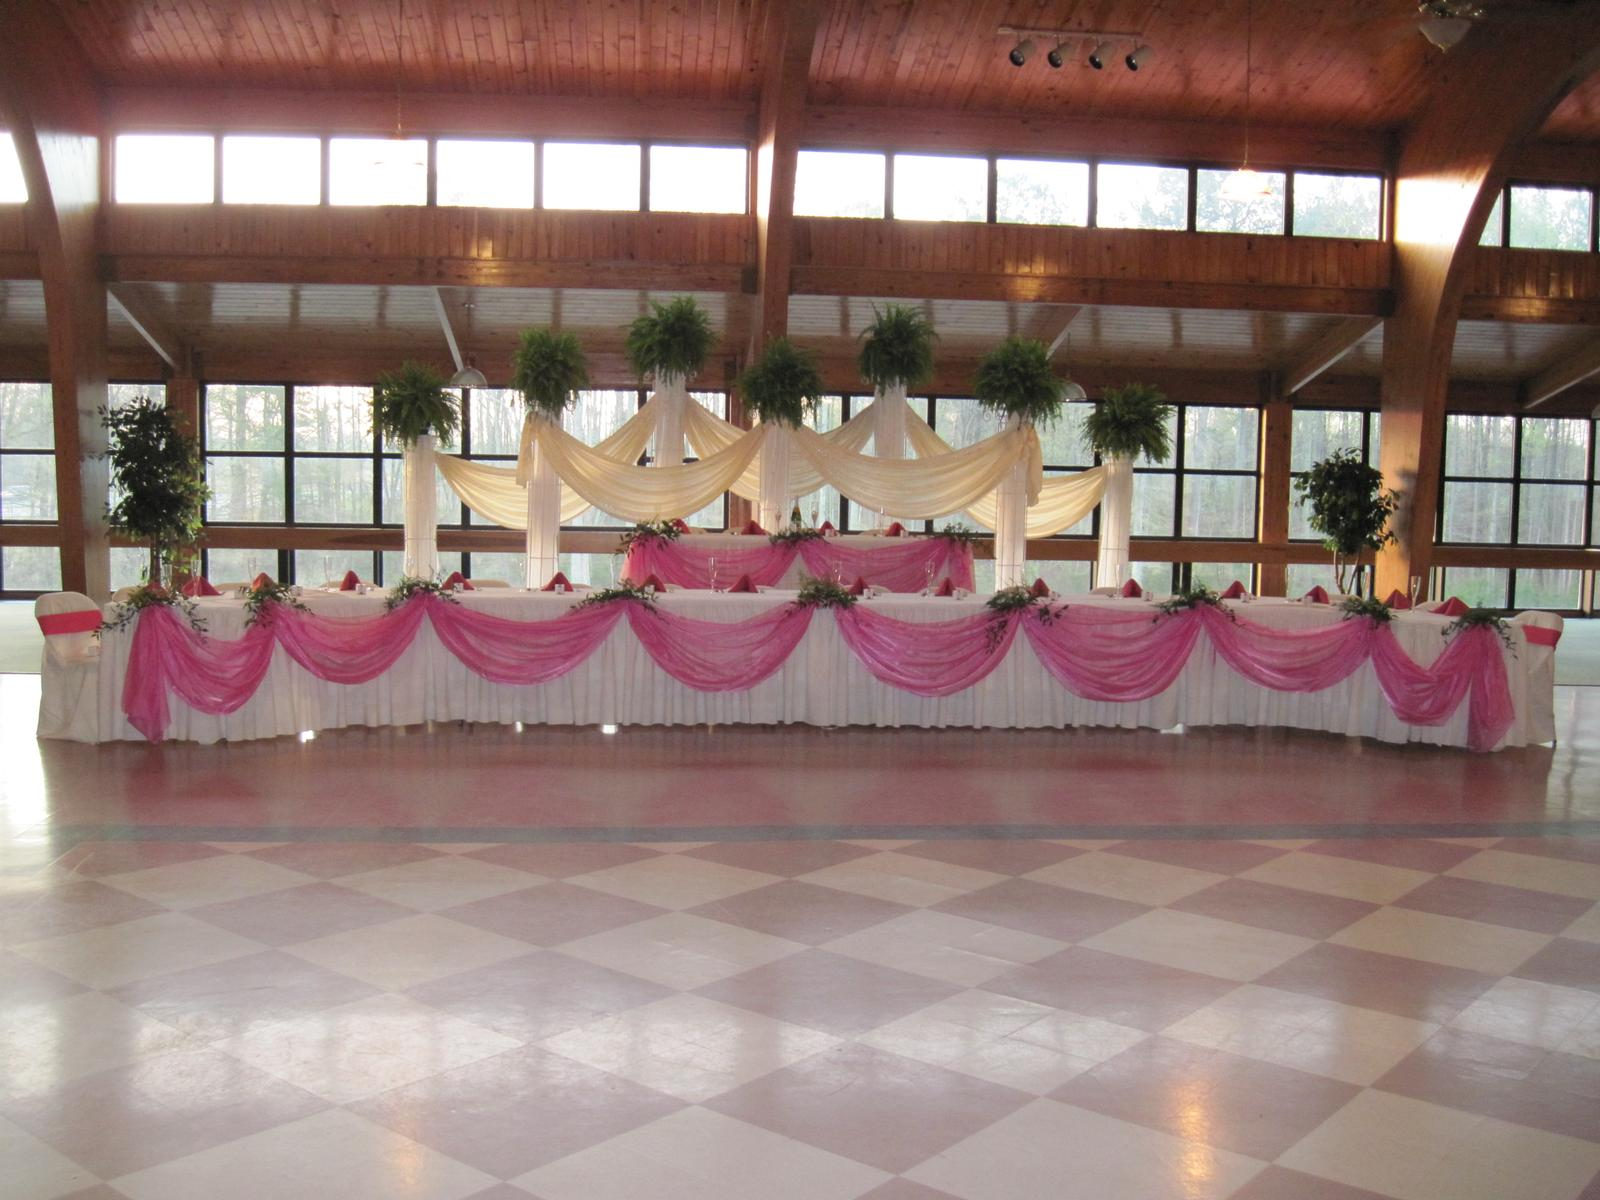 To Speak To The Hall Rental Chairman Please Call (301) 373 3910